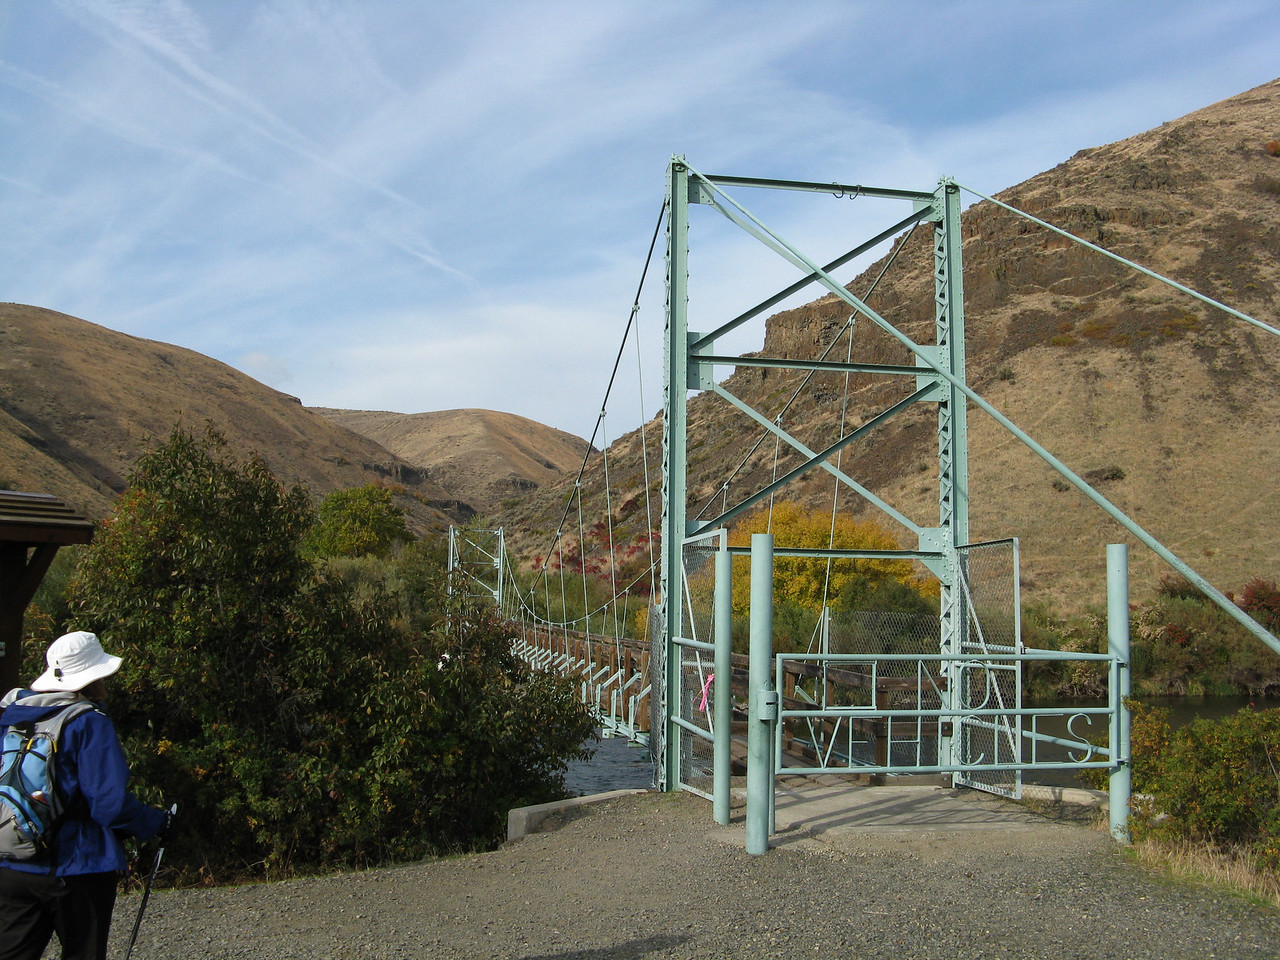 The foot bridge crosses the Yakima River and takes us to the mouth  of Umtanum Creek.